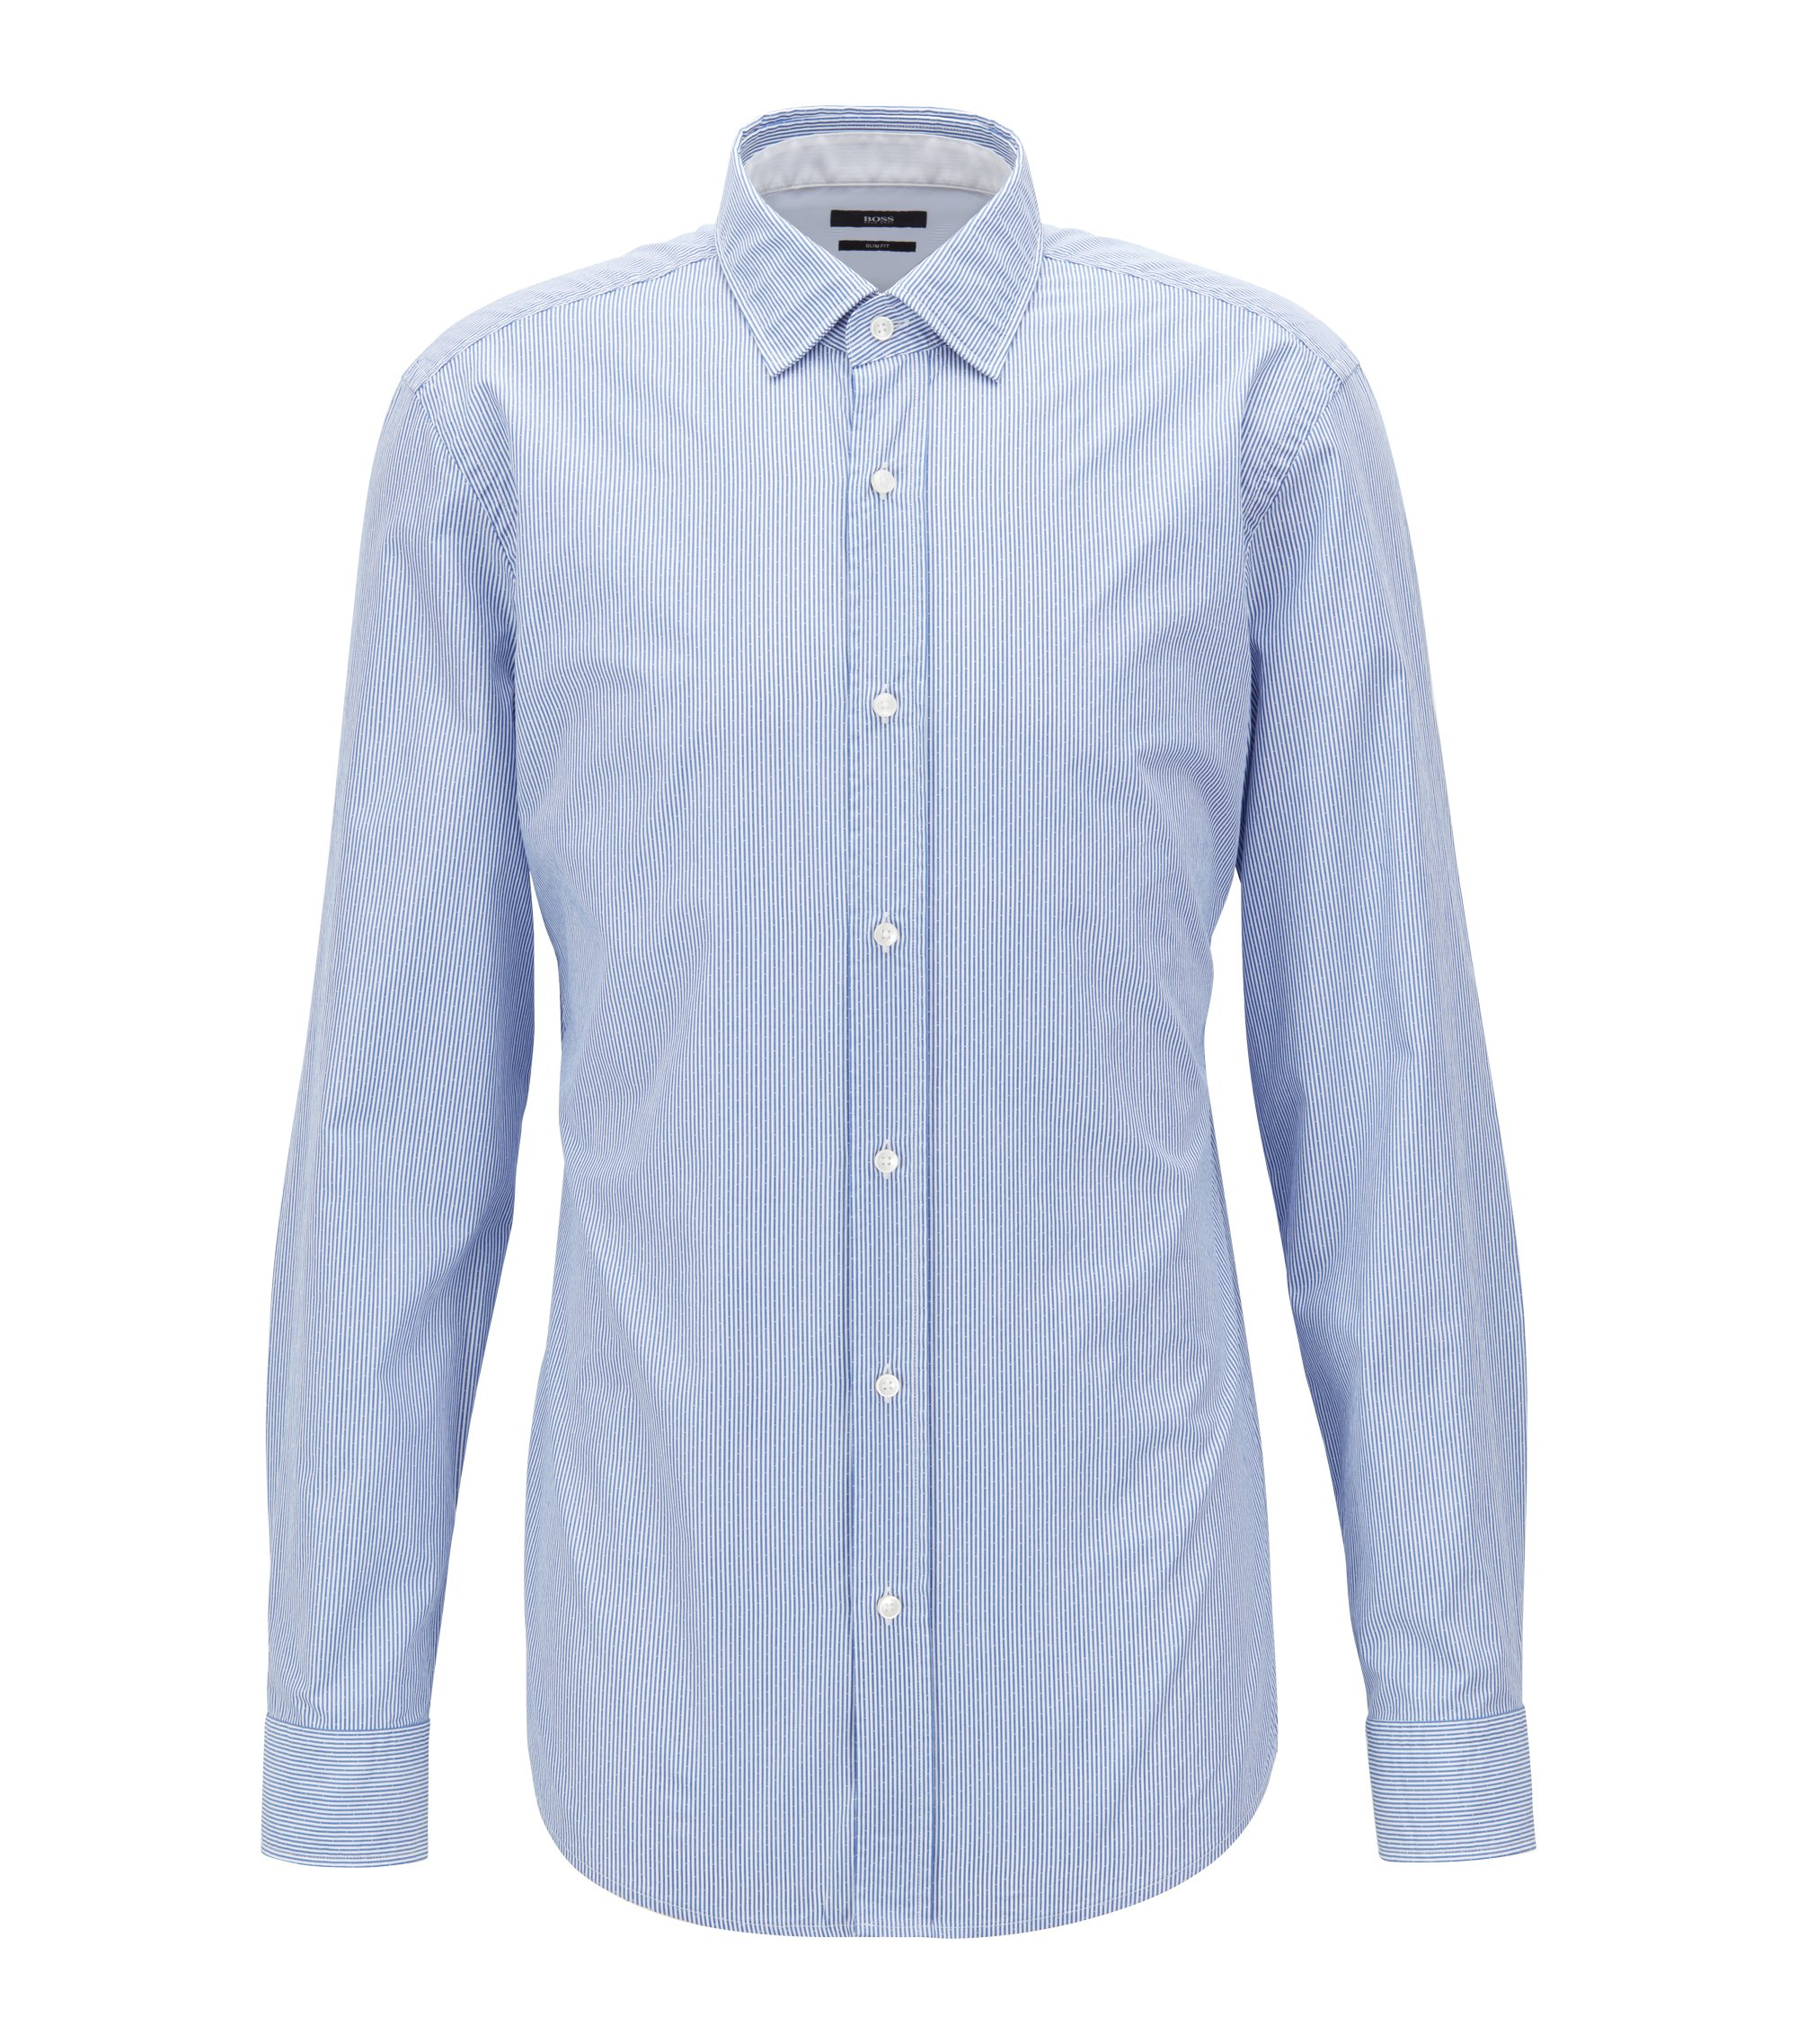 Slim-fit shirt in striped dobby cotton poplin, Blue